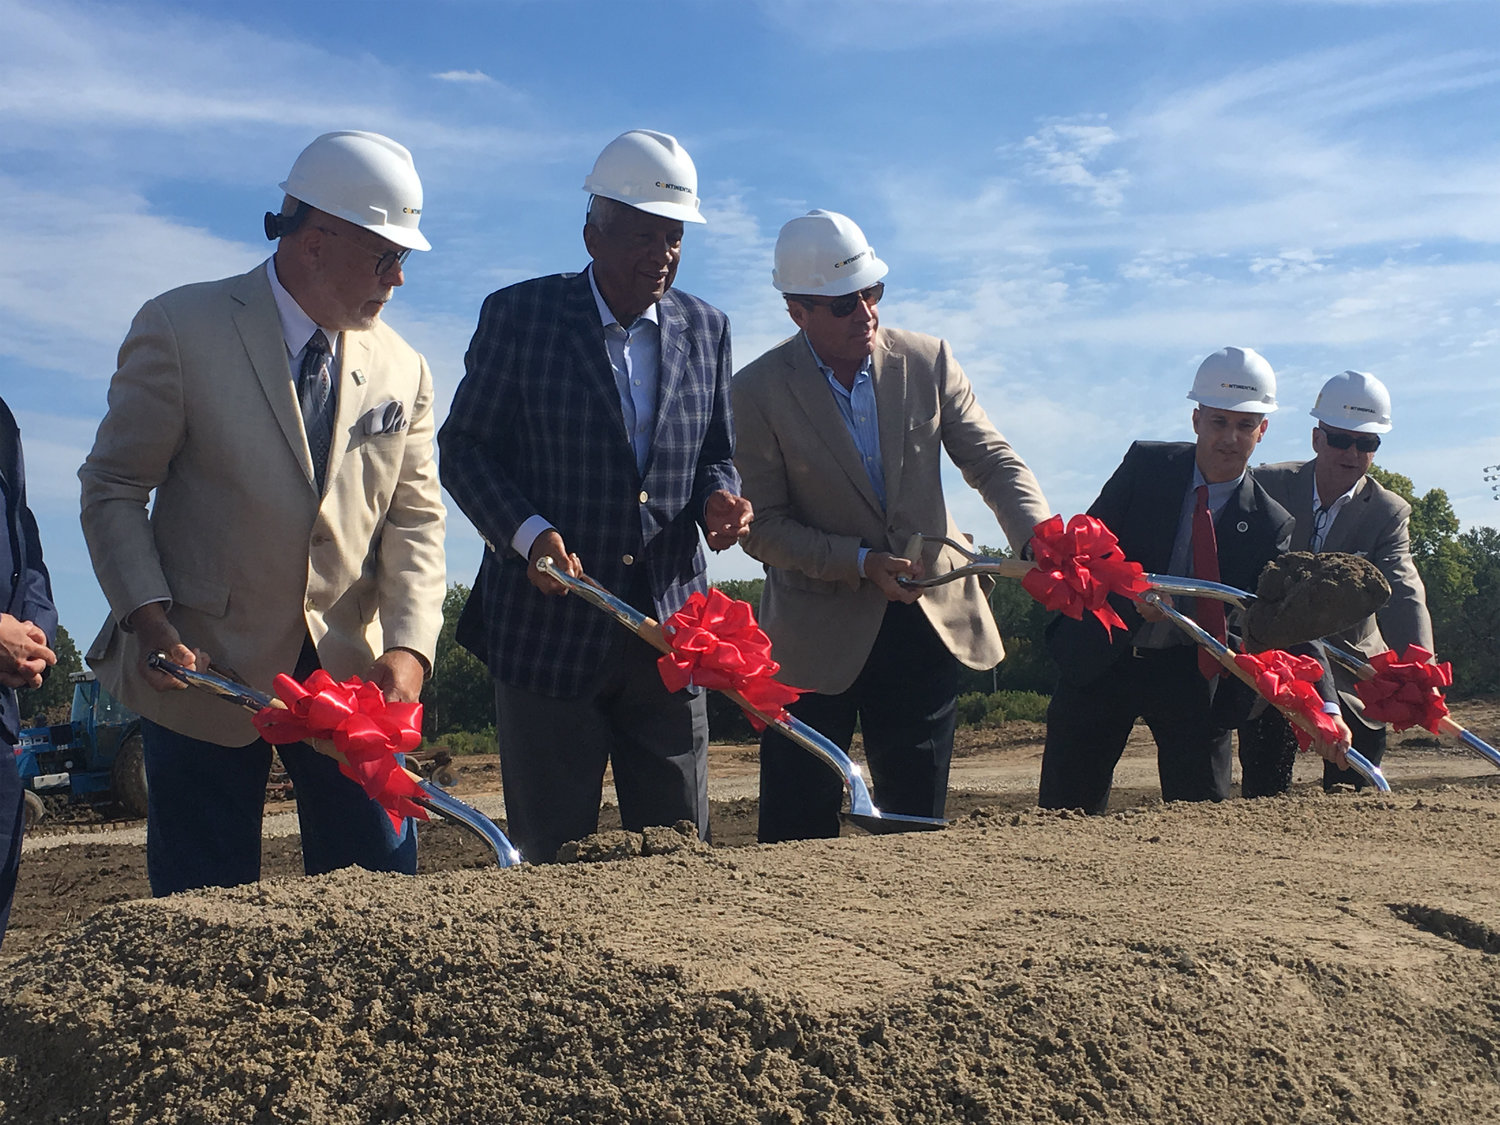 Drain Commissioner Pat Lindemann (left), Developer Joel Ferguson, former Mayor Virg Bernero, Mayor Andy Schor and Christopher Stralkowski, the executive project manager for Ferguson Development LLC, participate in a ceremonial groundbreaking event for the Red Cedar Development project.